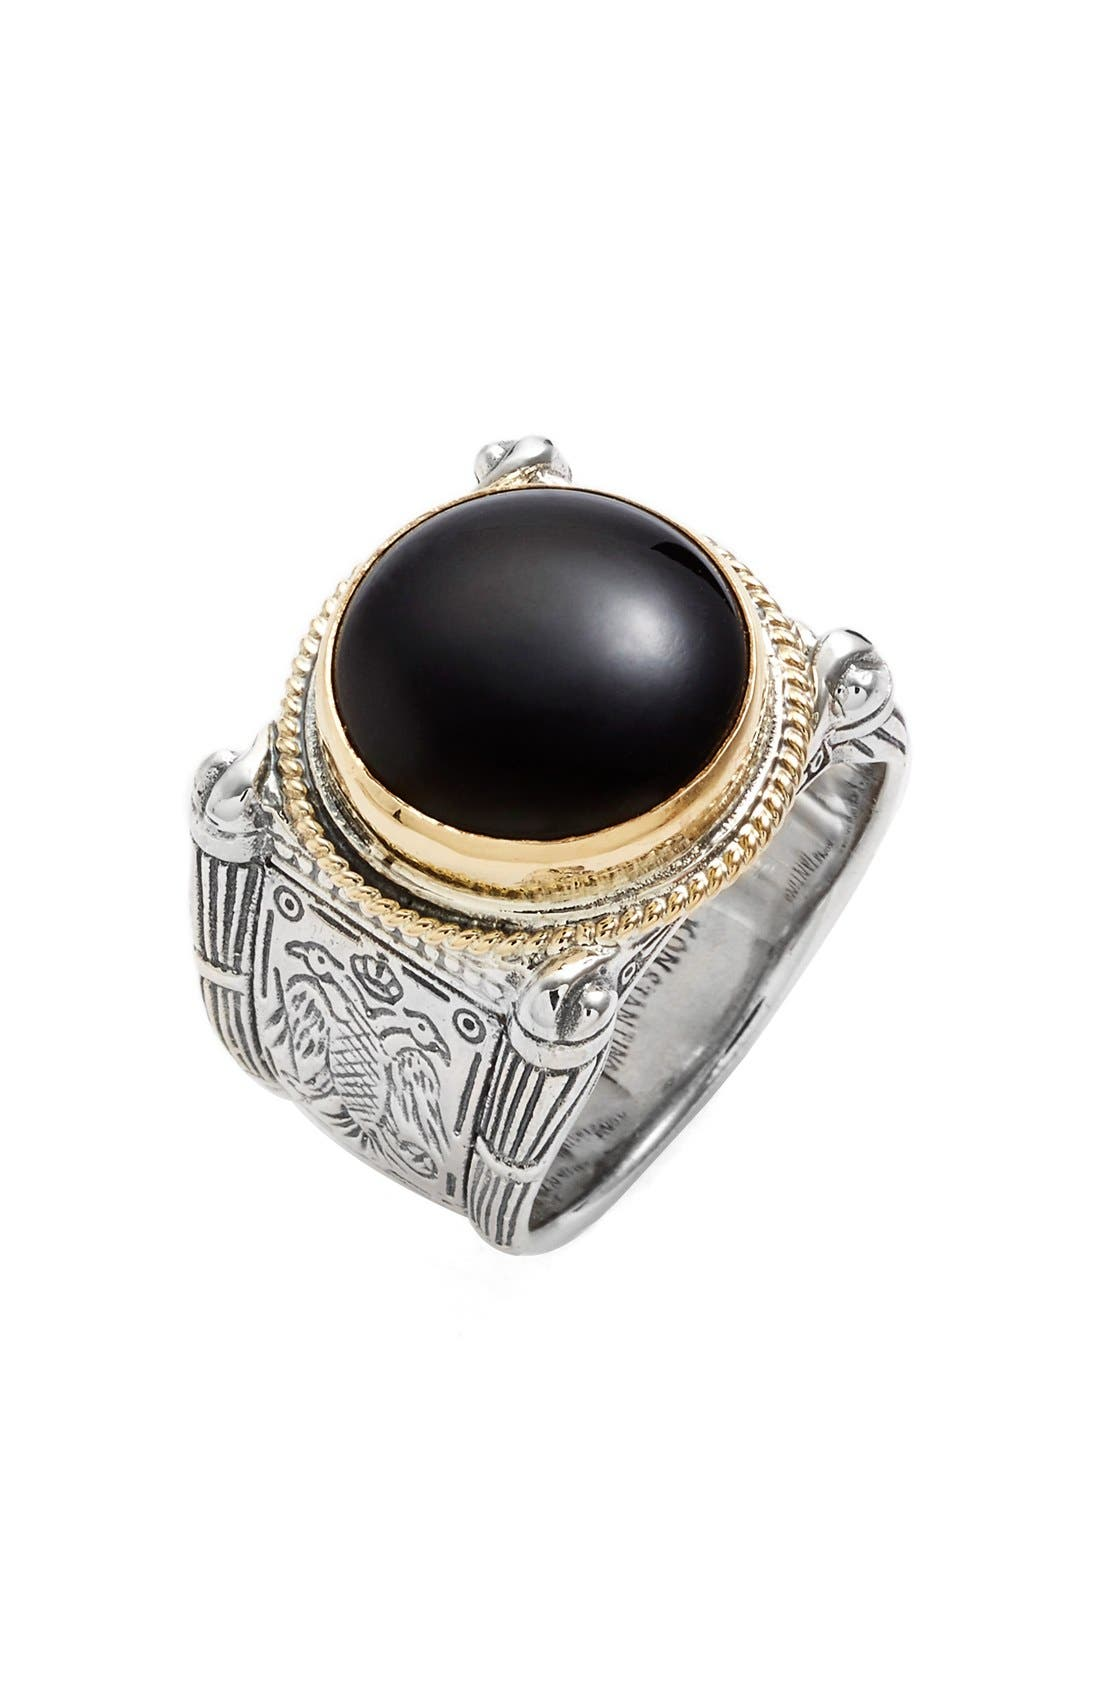 Main Image - Konstantino 'Minos' Etched Black Onyx Ring